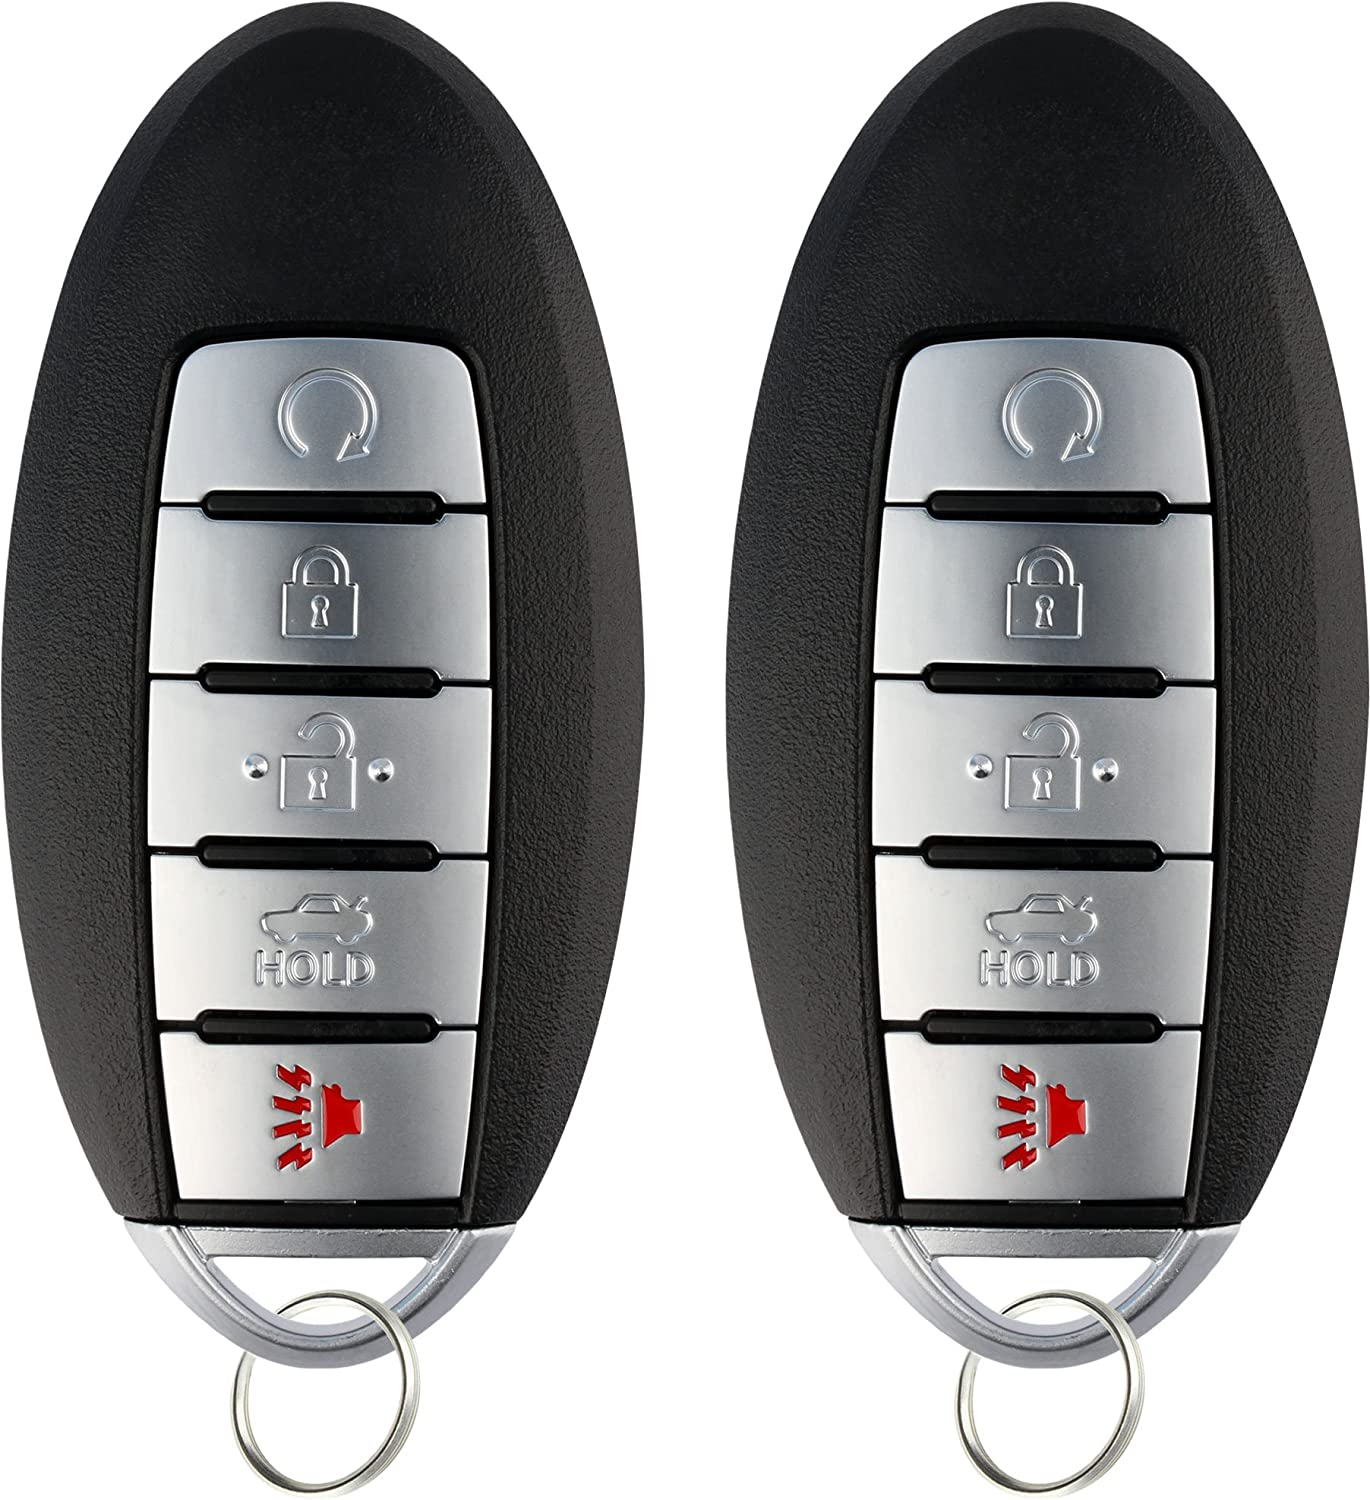 Watching Endless Armada Entering >> Keylessoption Keyless Entry Remote Starter Smart Car Key Fob For Nissan Armada Infiniti Qx80 Qx56 Cwtwb1g744 Pack Of 2